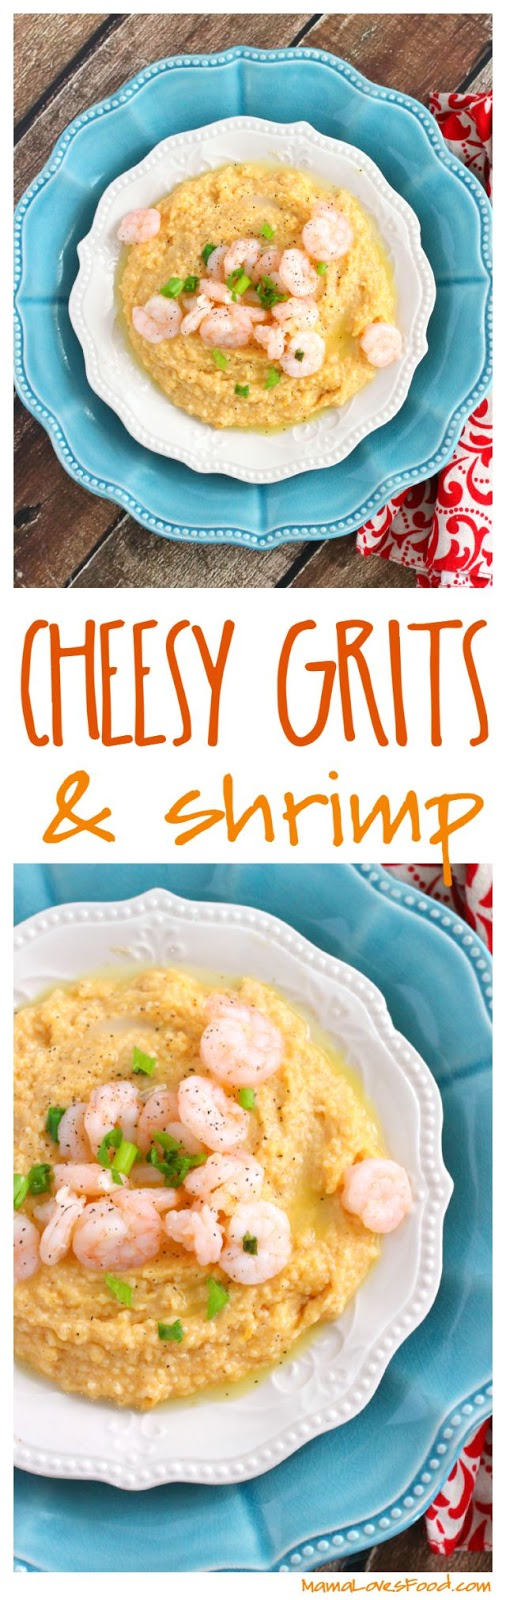 Cheesy Grits and Shrimp